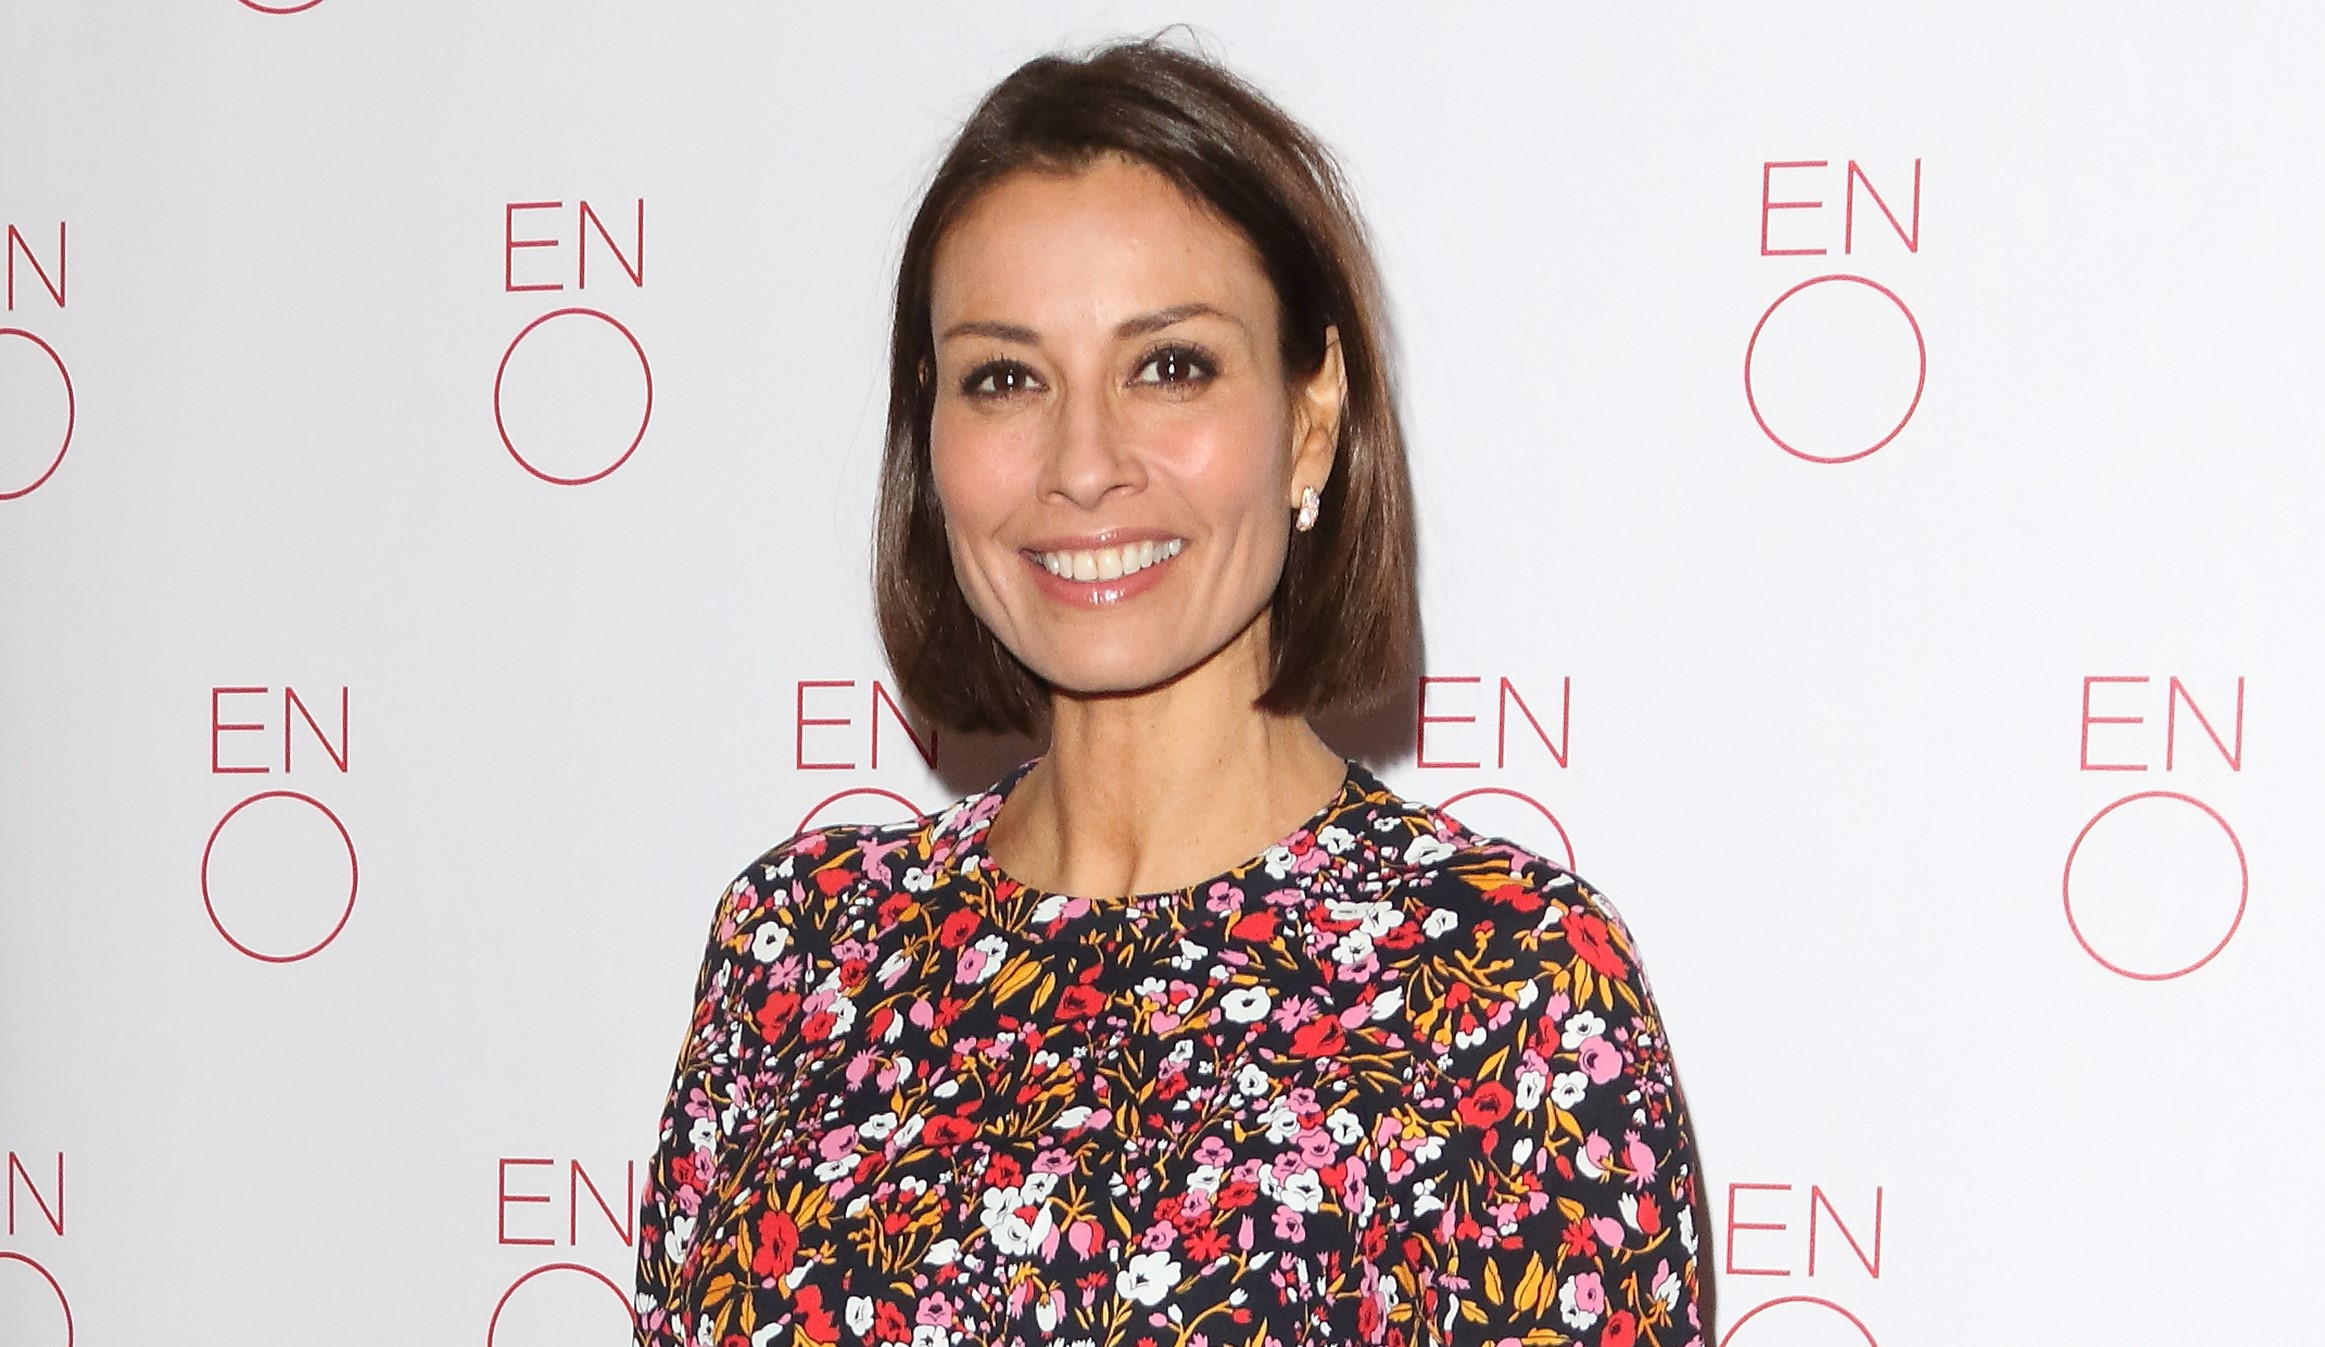 Melanie Sykes shows off incredible bikini body in sizzling photo